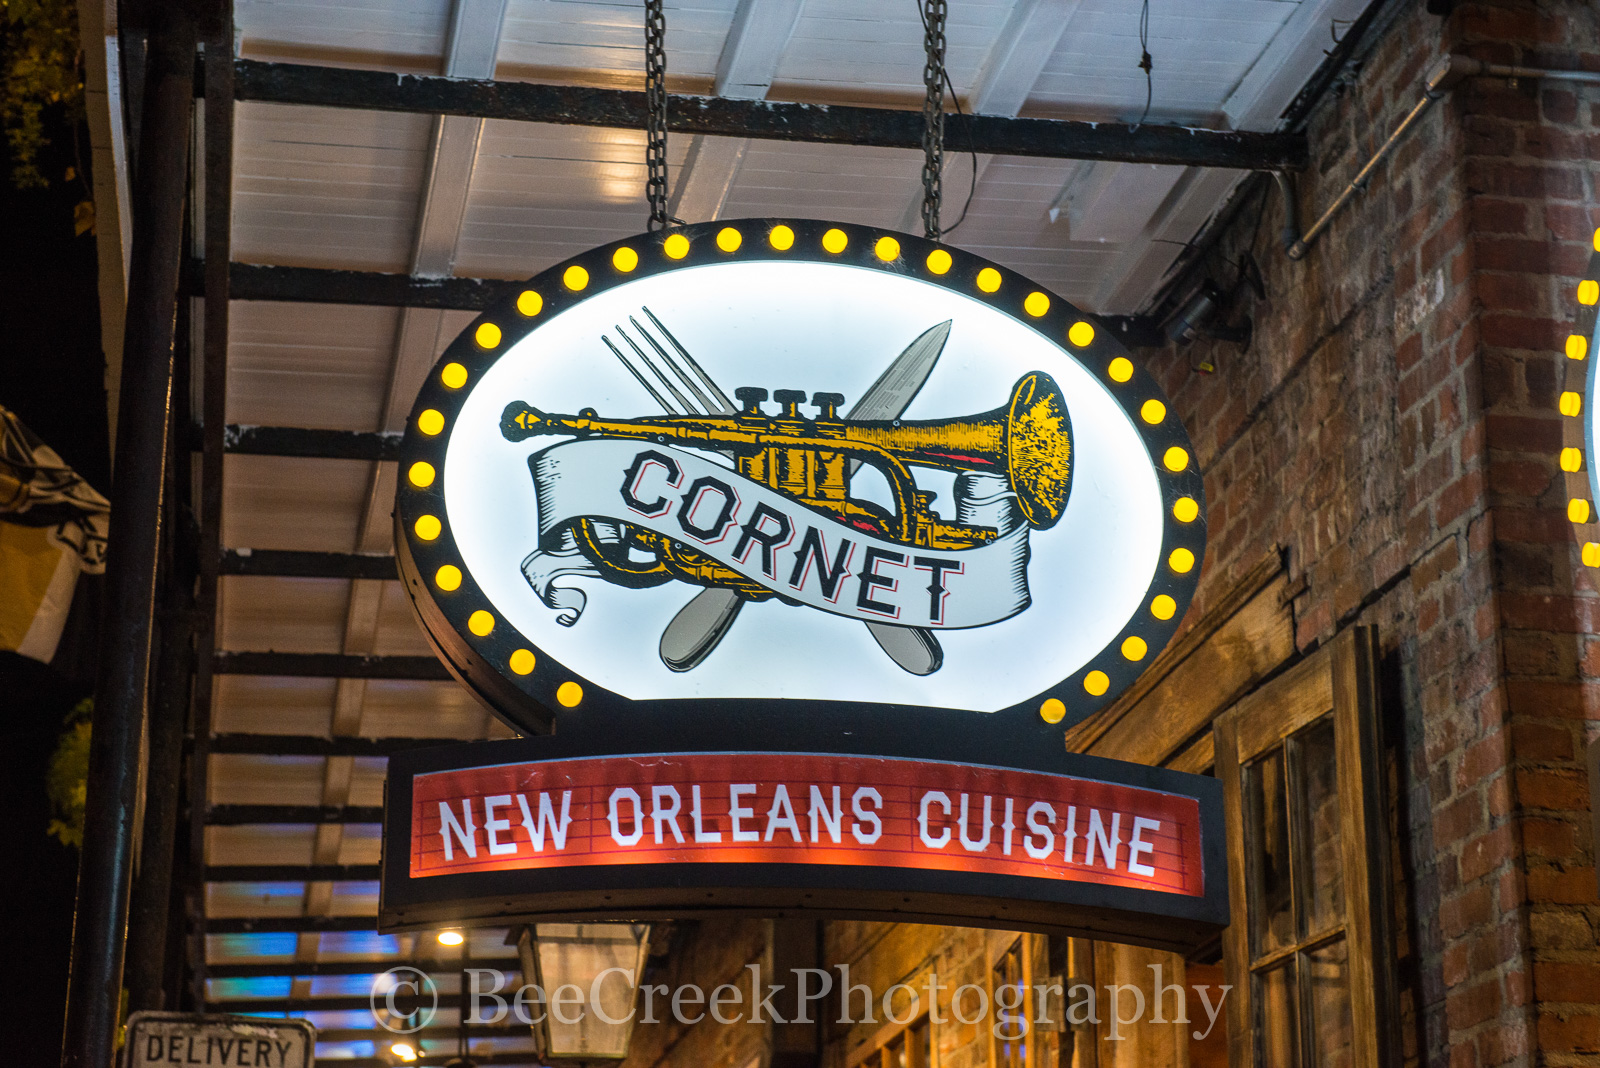 Bourbon Street, French Quarter, New Orleans, bars, live music, neon, neon signs, restaurants, signs, Cornet, , photo